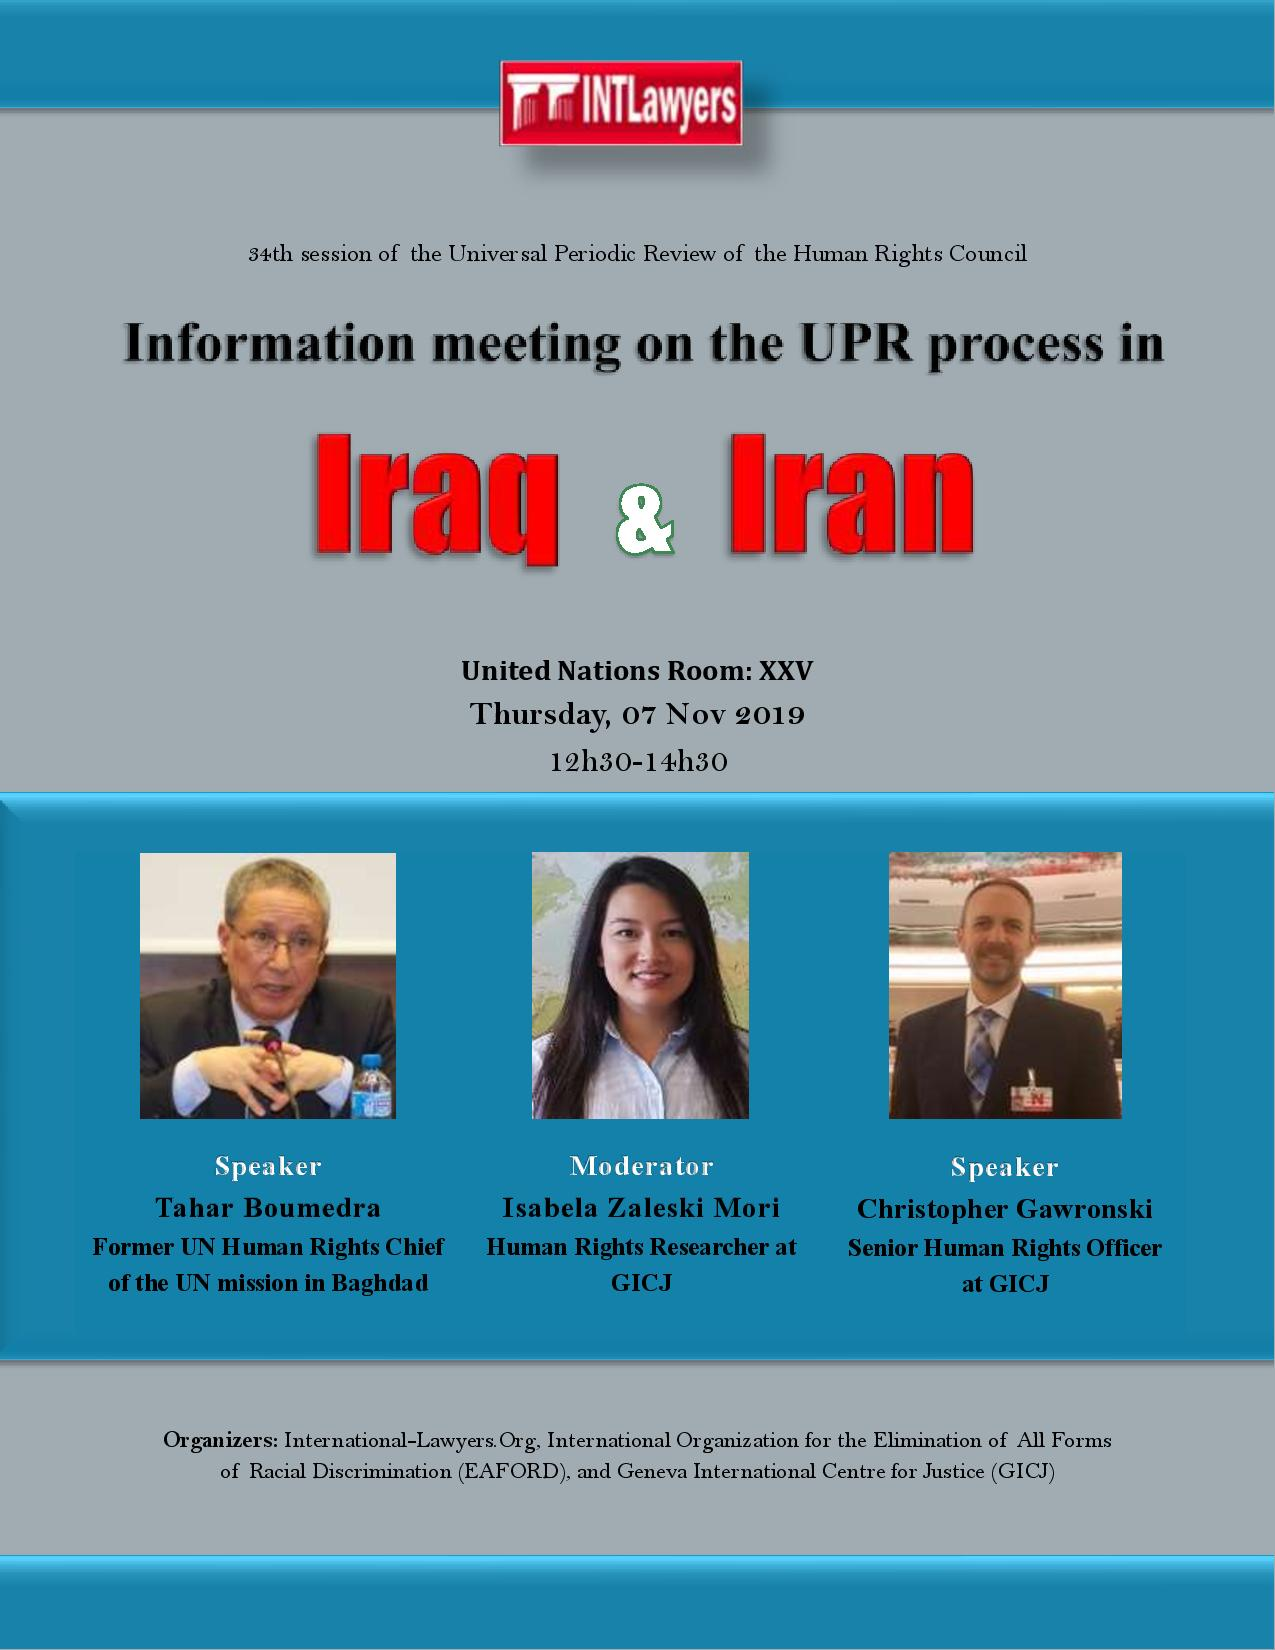 Information meeting on the UPR process in Iraq & Iran - 34th Session of the UPR